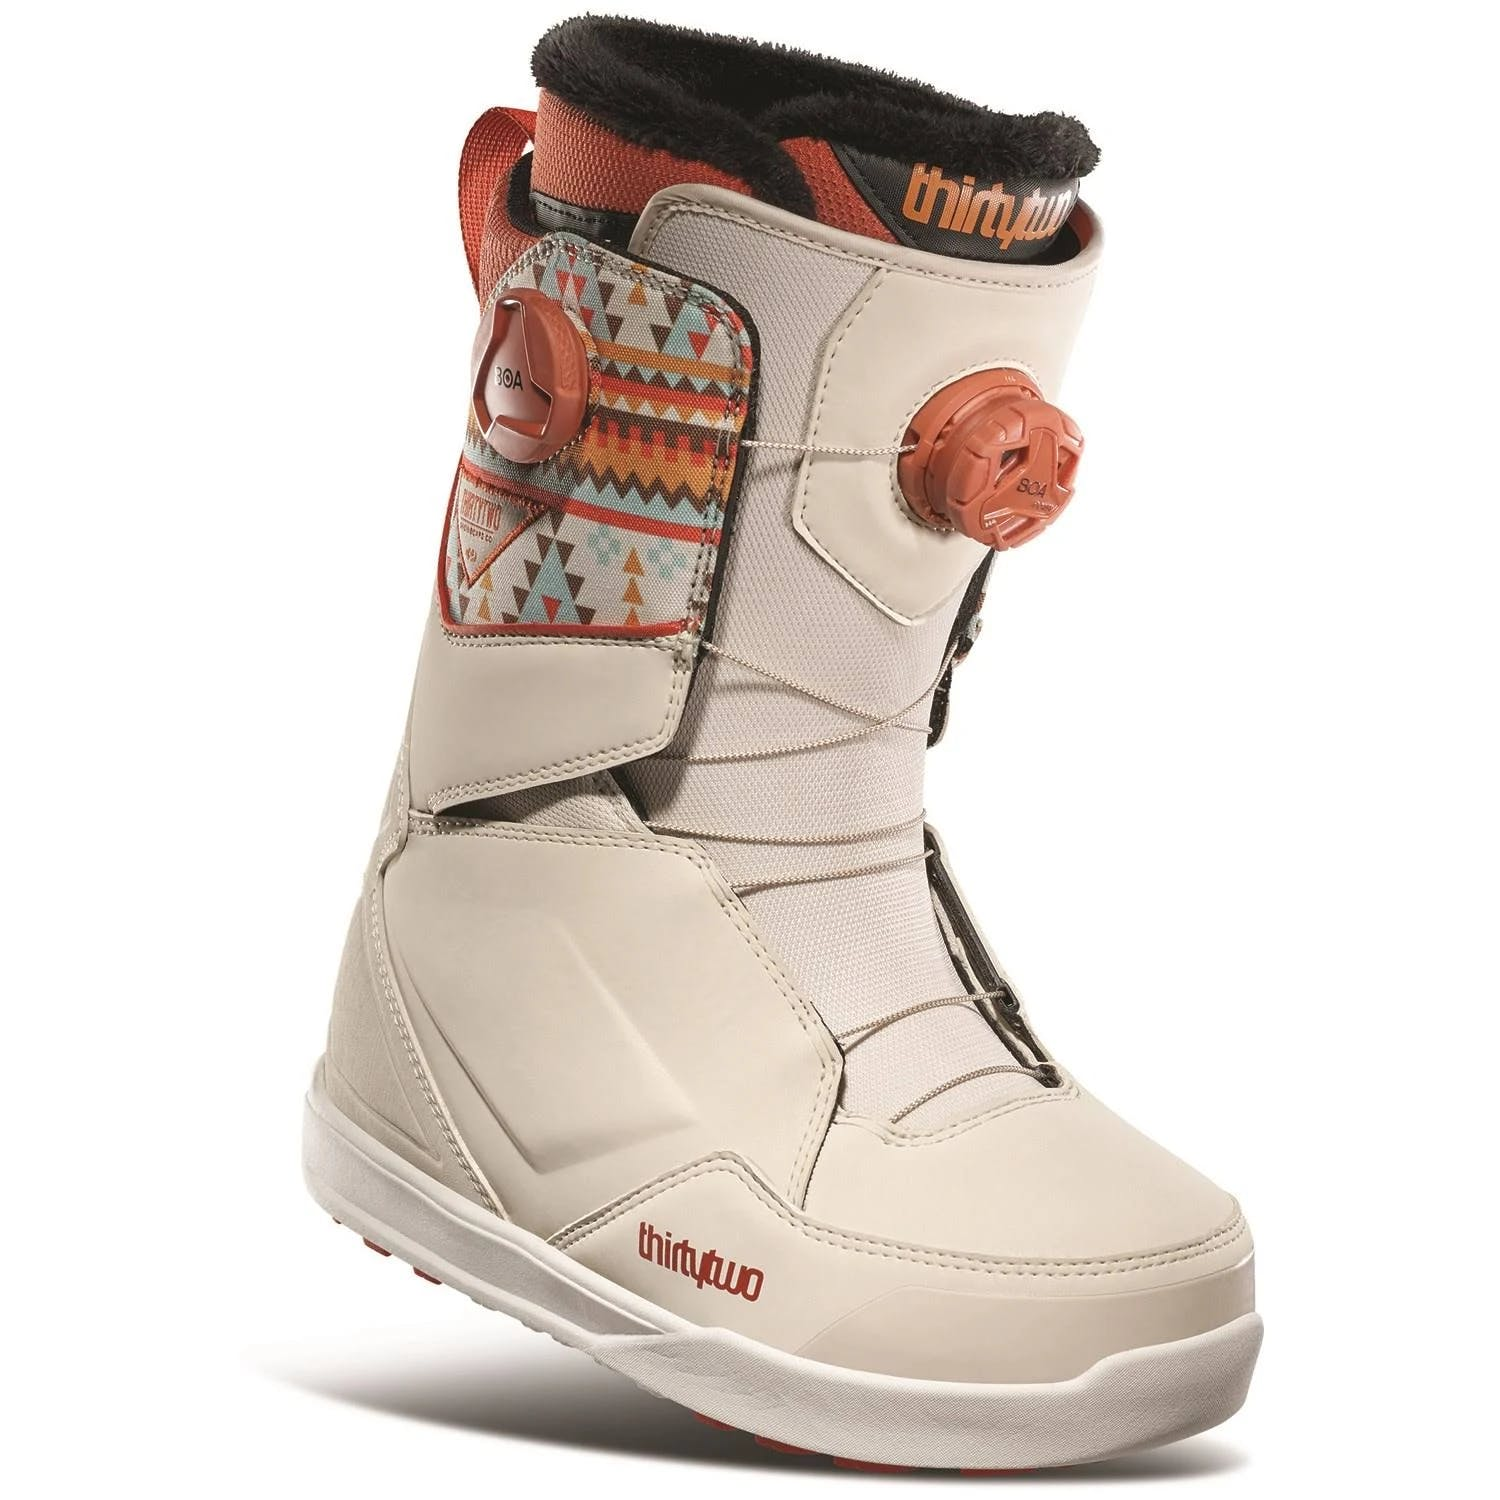 thirtytwo Women's Lashed Double BOA Snowboard Boots · 2021